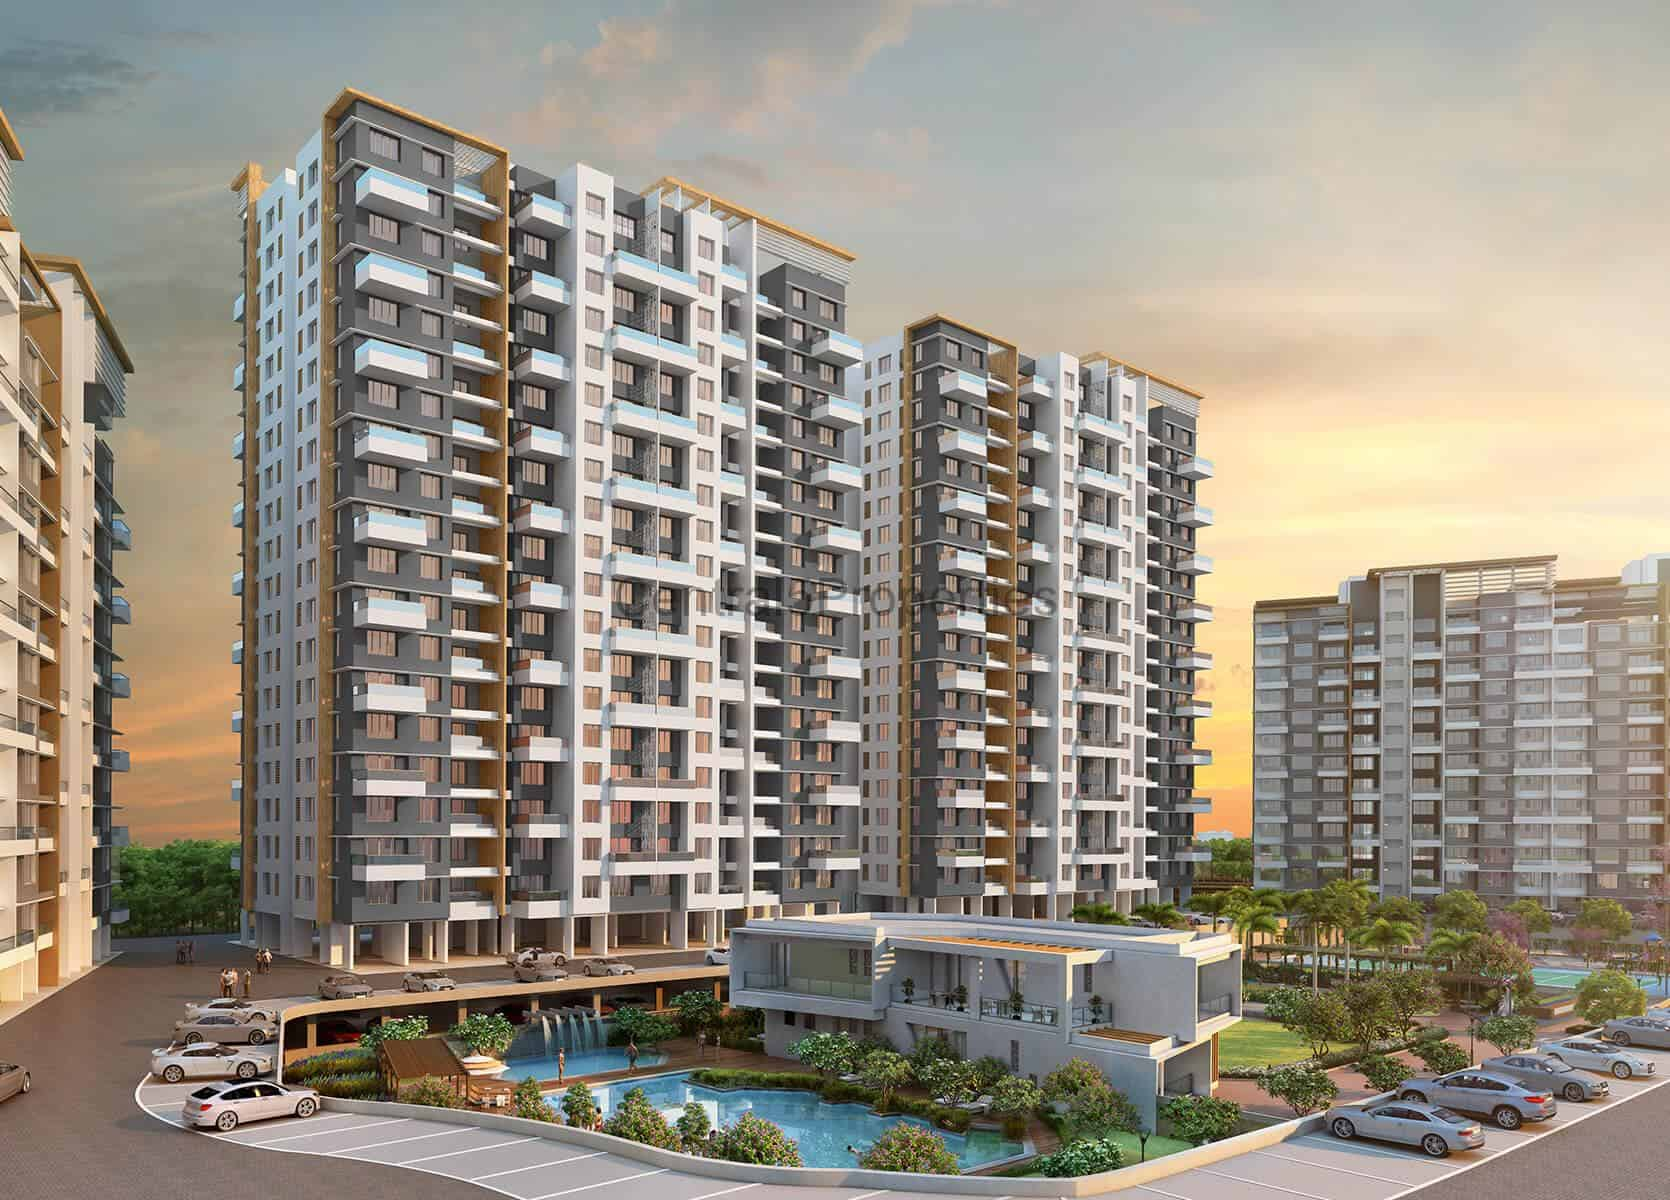 2BHK for sale in waqad pune